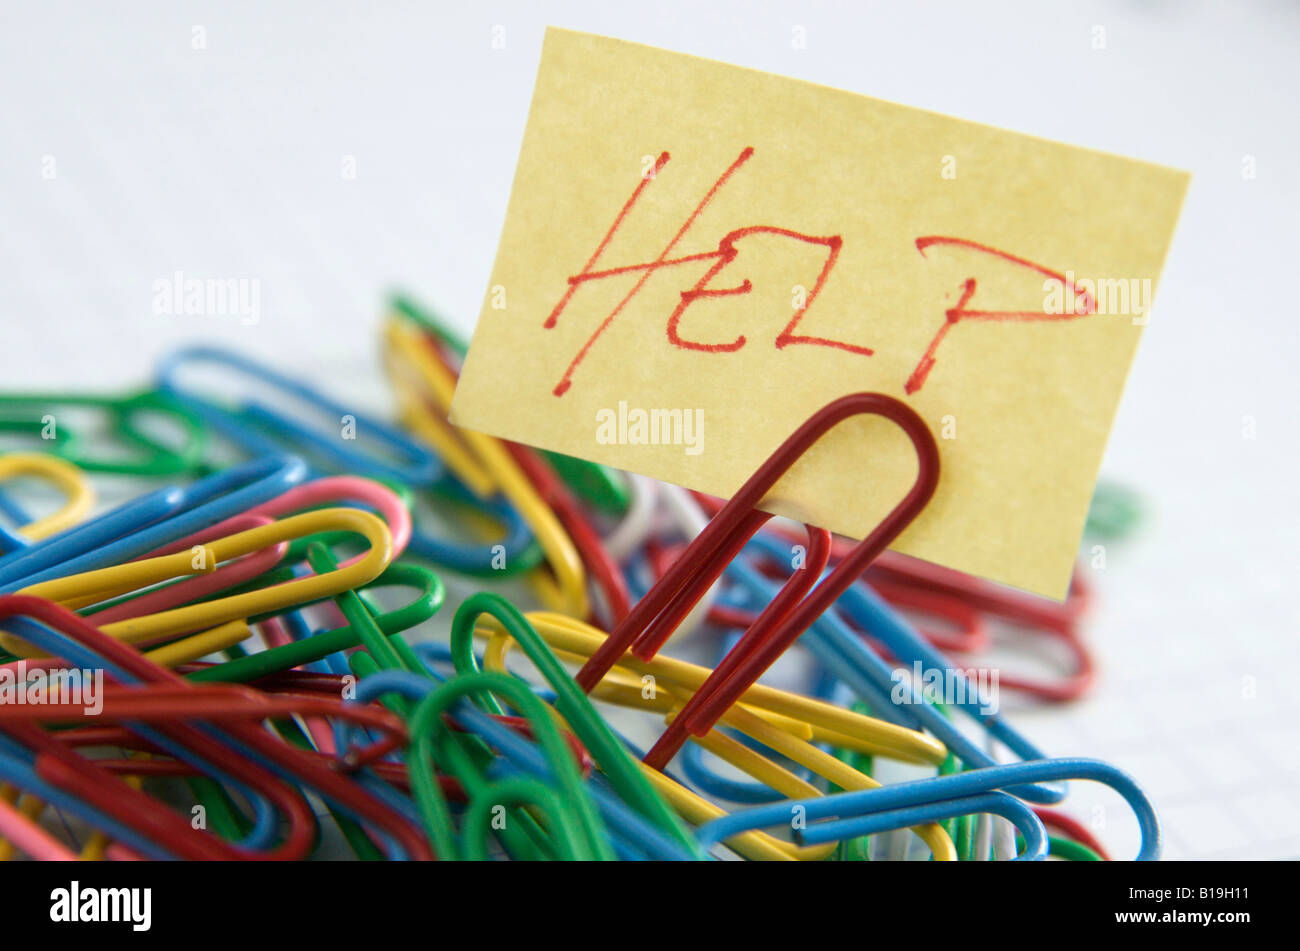 Paper clips and post it note with Help written on it - organisation / office / work concept - Stock Image